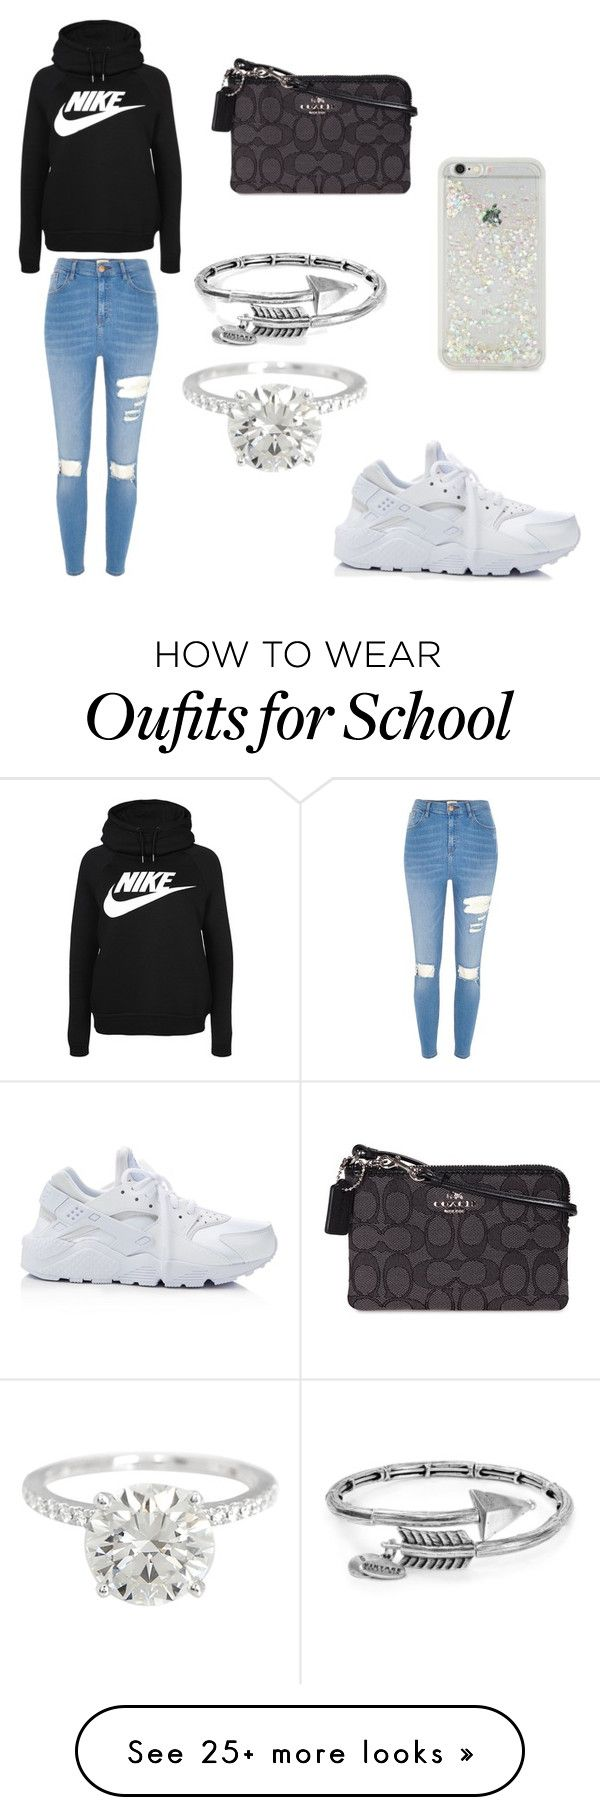 """""""HIGH SCHOOL STYLE"""" by mgarcia-iii on Polyvore featuring ban.do, River Island, NIKE, Alex and Ani and Coach"""